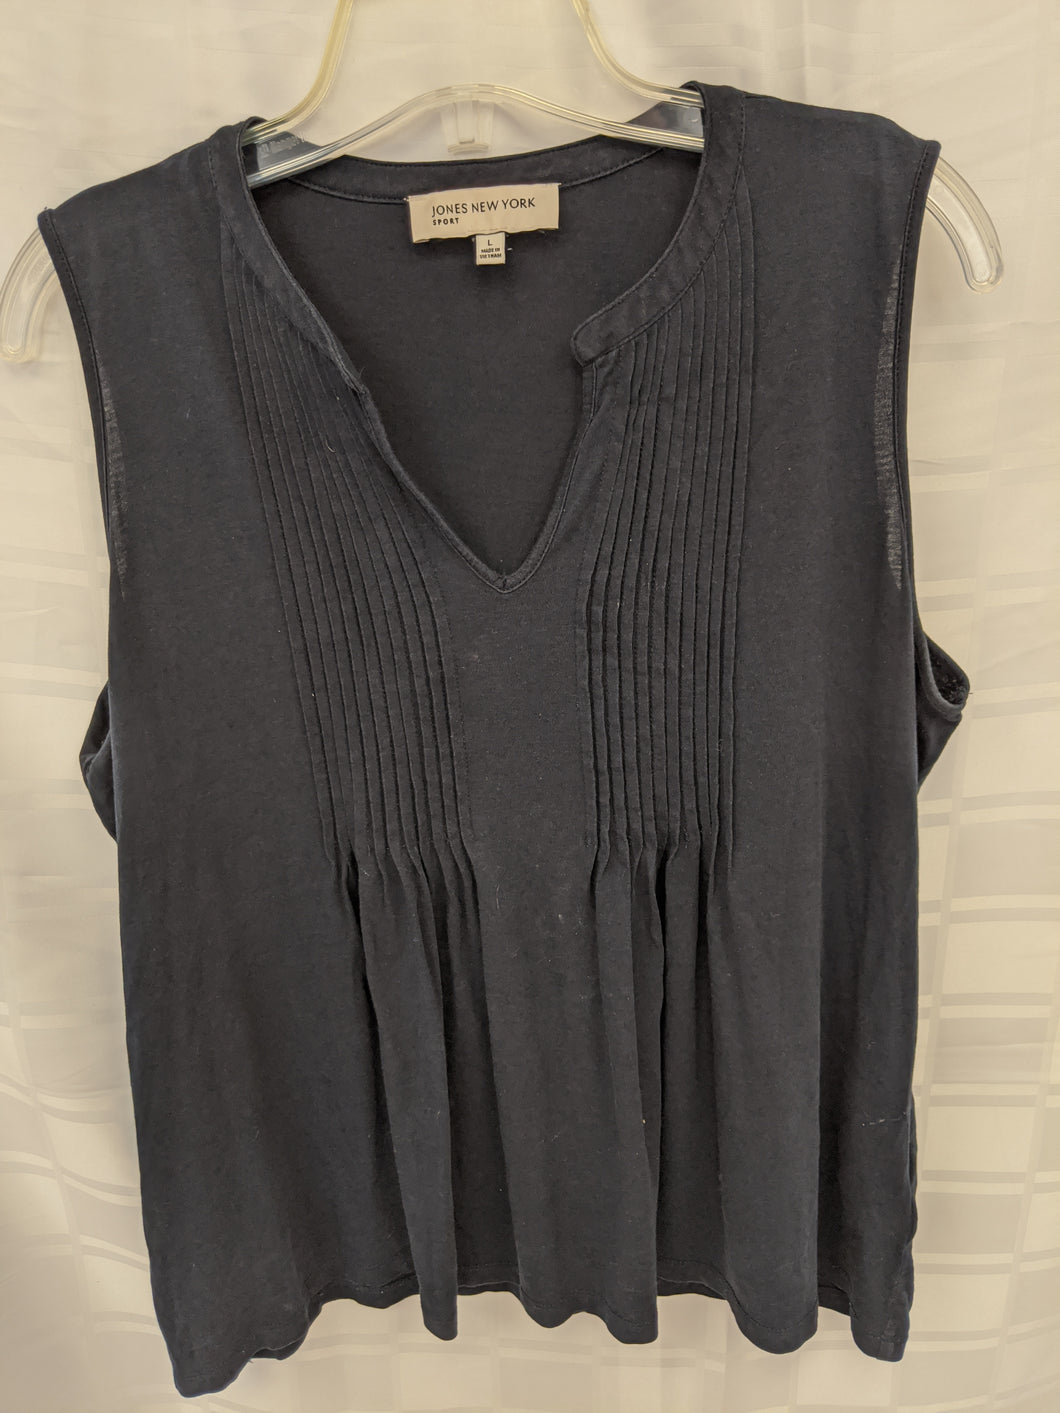 Sleeveless Top - Size L